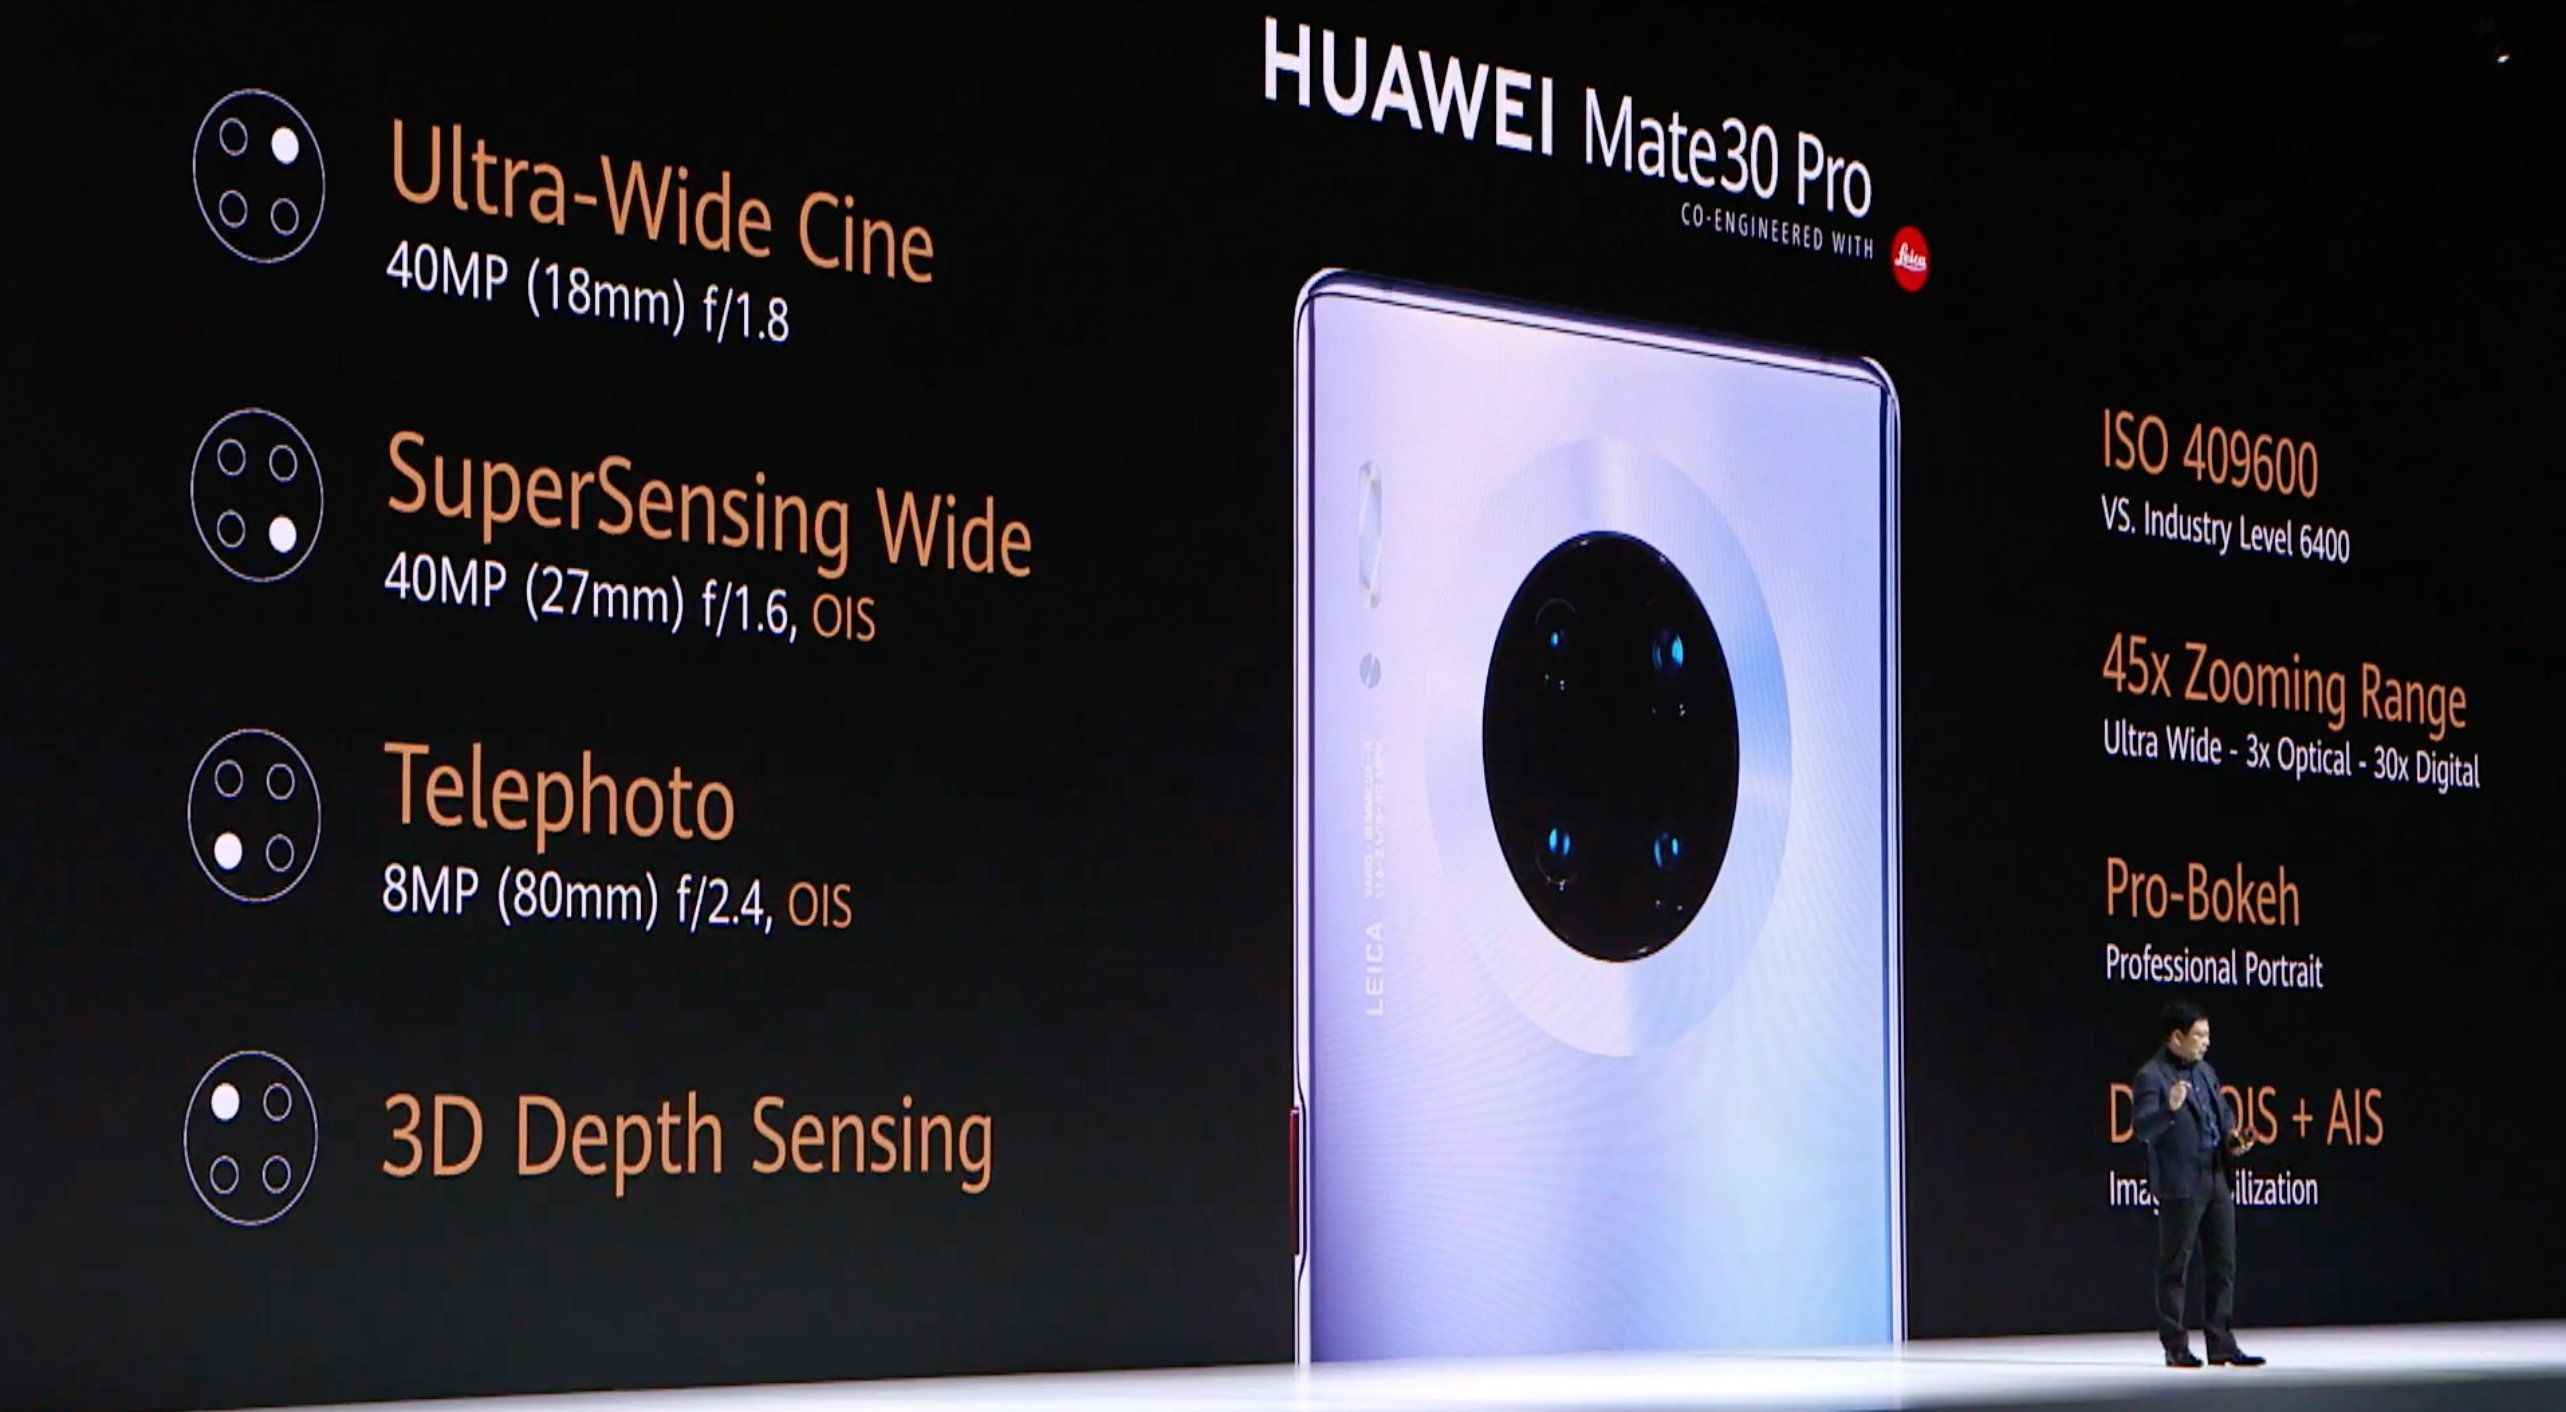 Huawei's Mate 30 Pro offers quad-camera array, 4K60 video